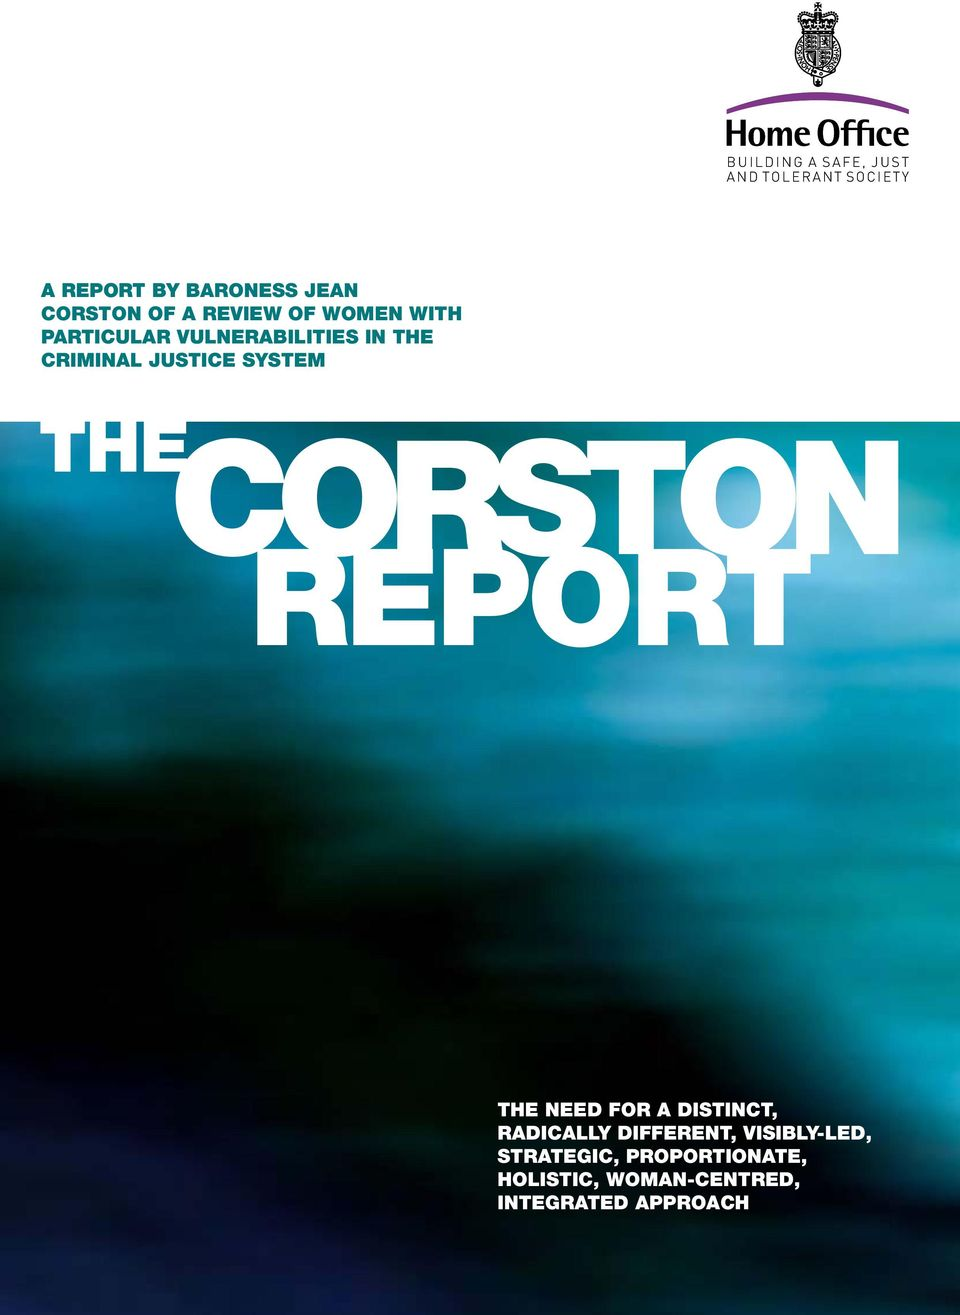 CriminAl JustiCe system the Corston report the need for A distinct, radically